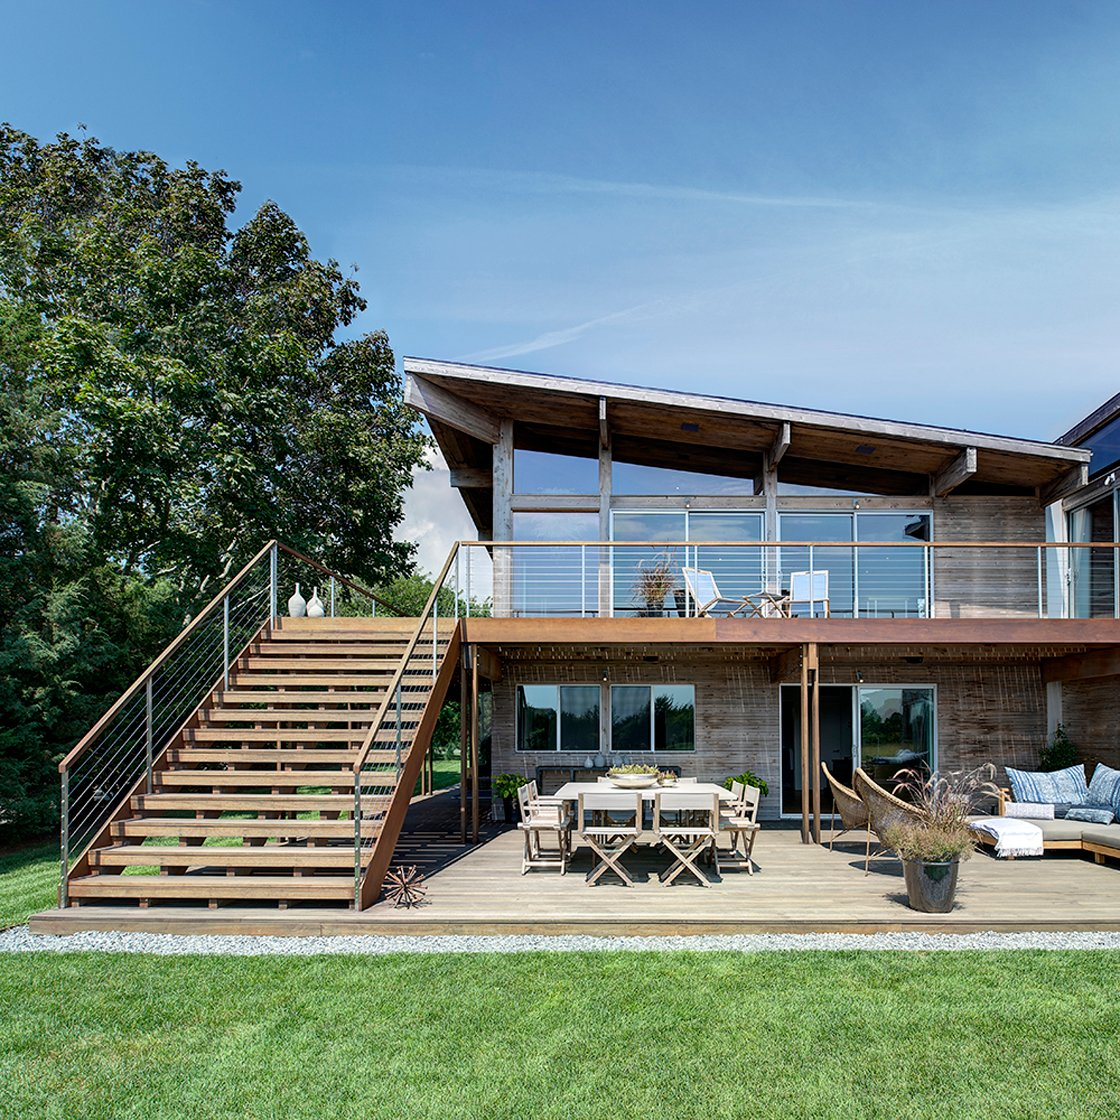 The rear of the home features an extensive lower patio on raised natural wood, allowing for sheltered seating beneath the balcony and a full dining area. Floor to ceiling glass on the upper level, with multiple sliding doors, allows for natural light and air to fill the home.